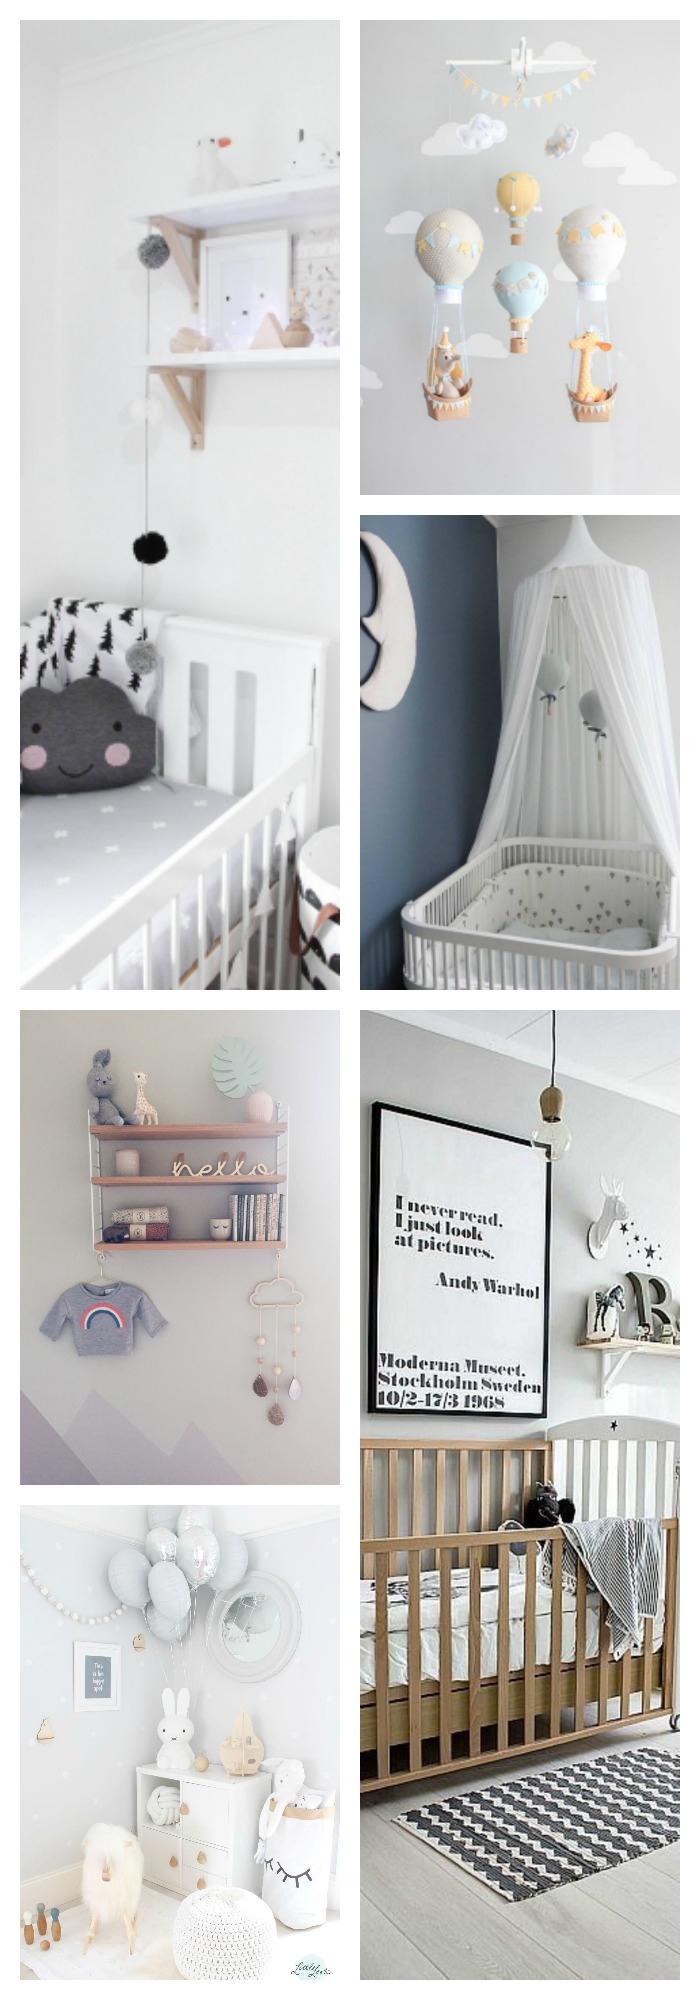 neutral-nursery-inspiration.jpg